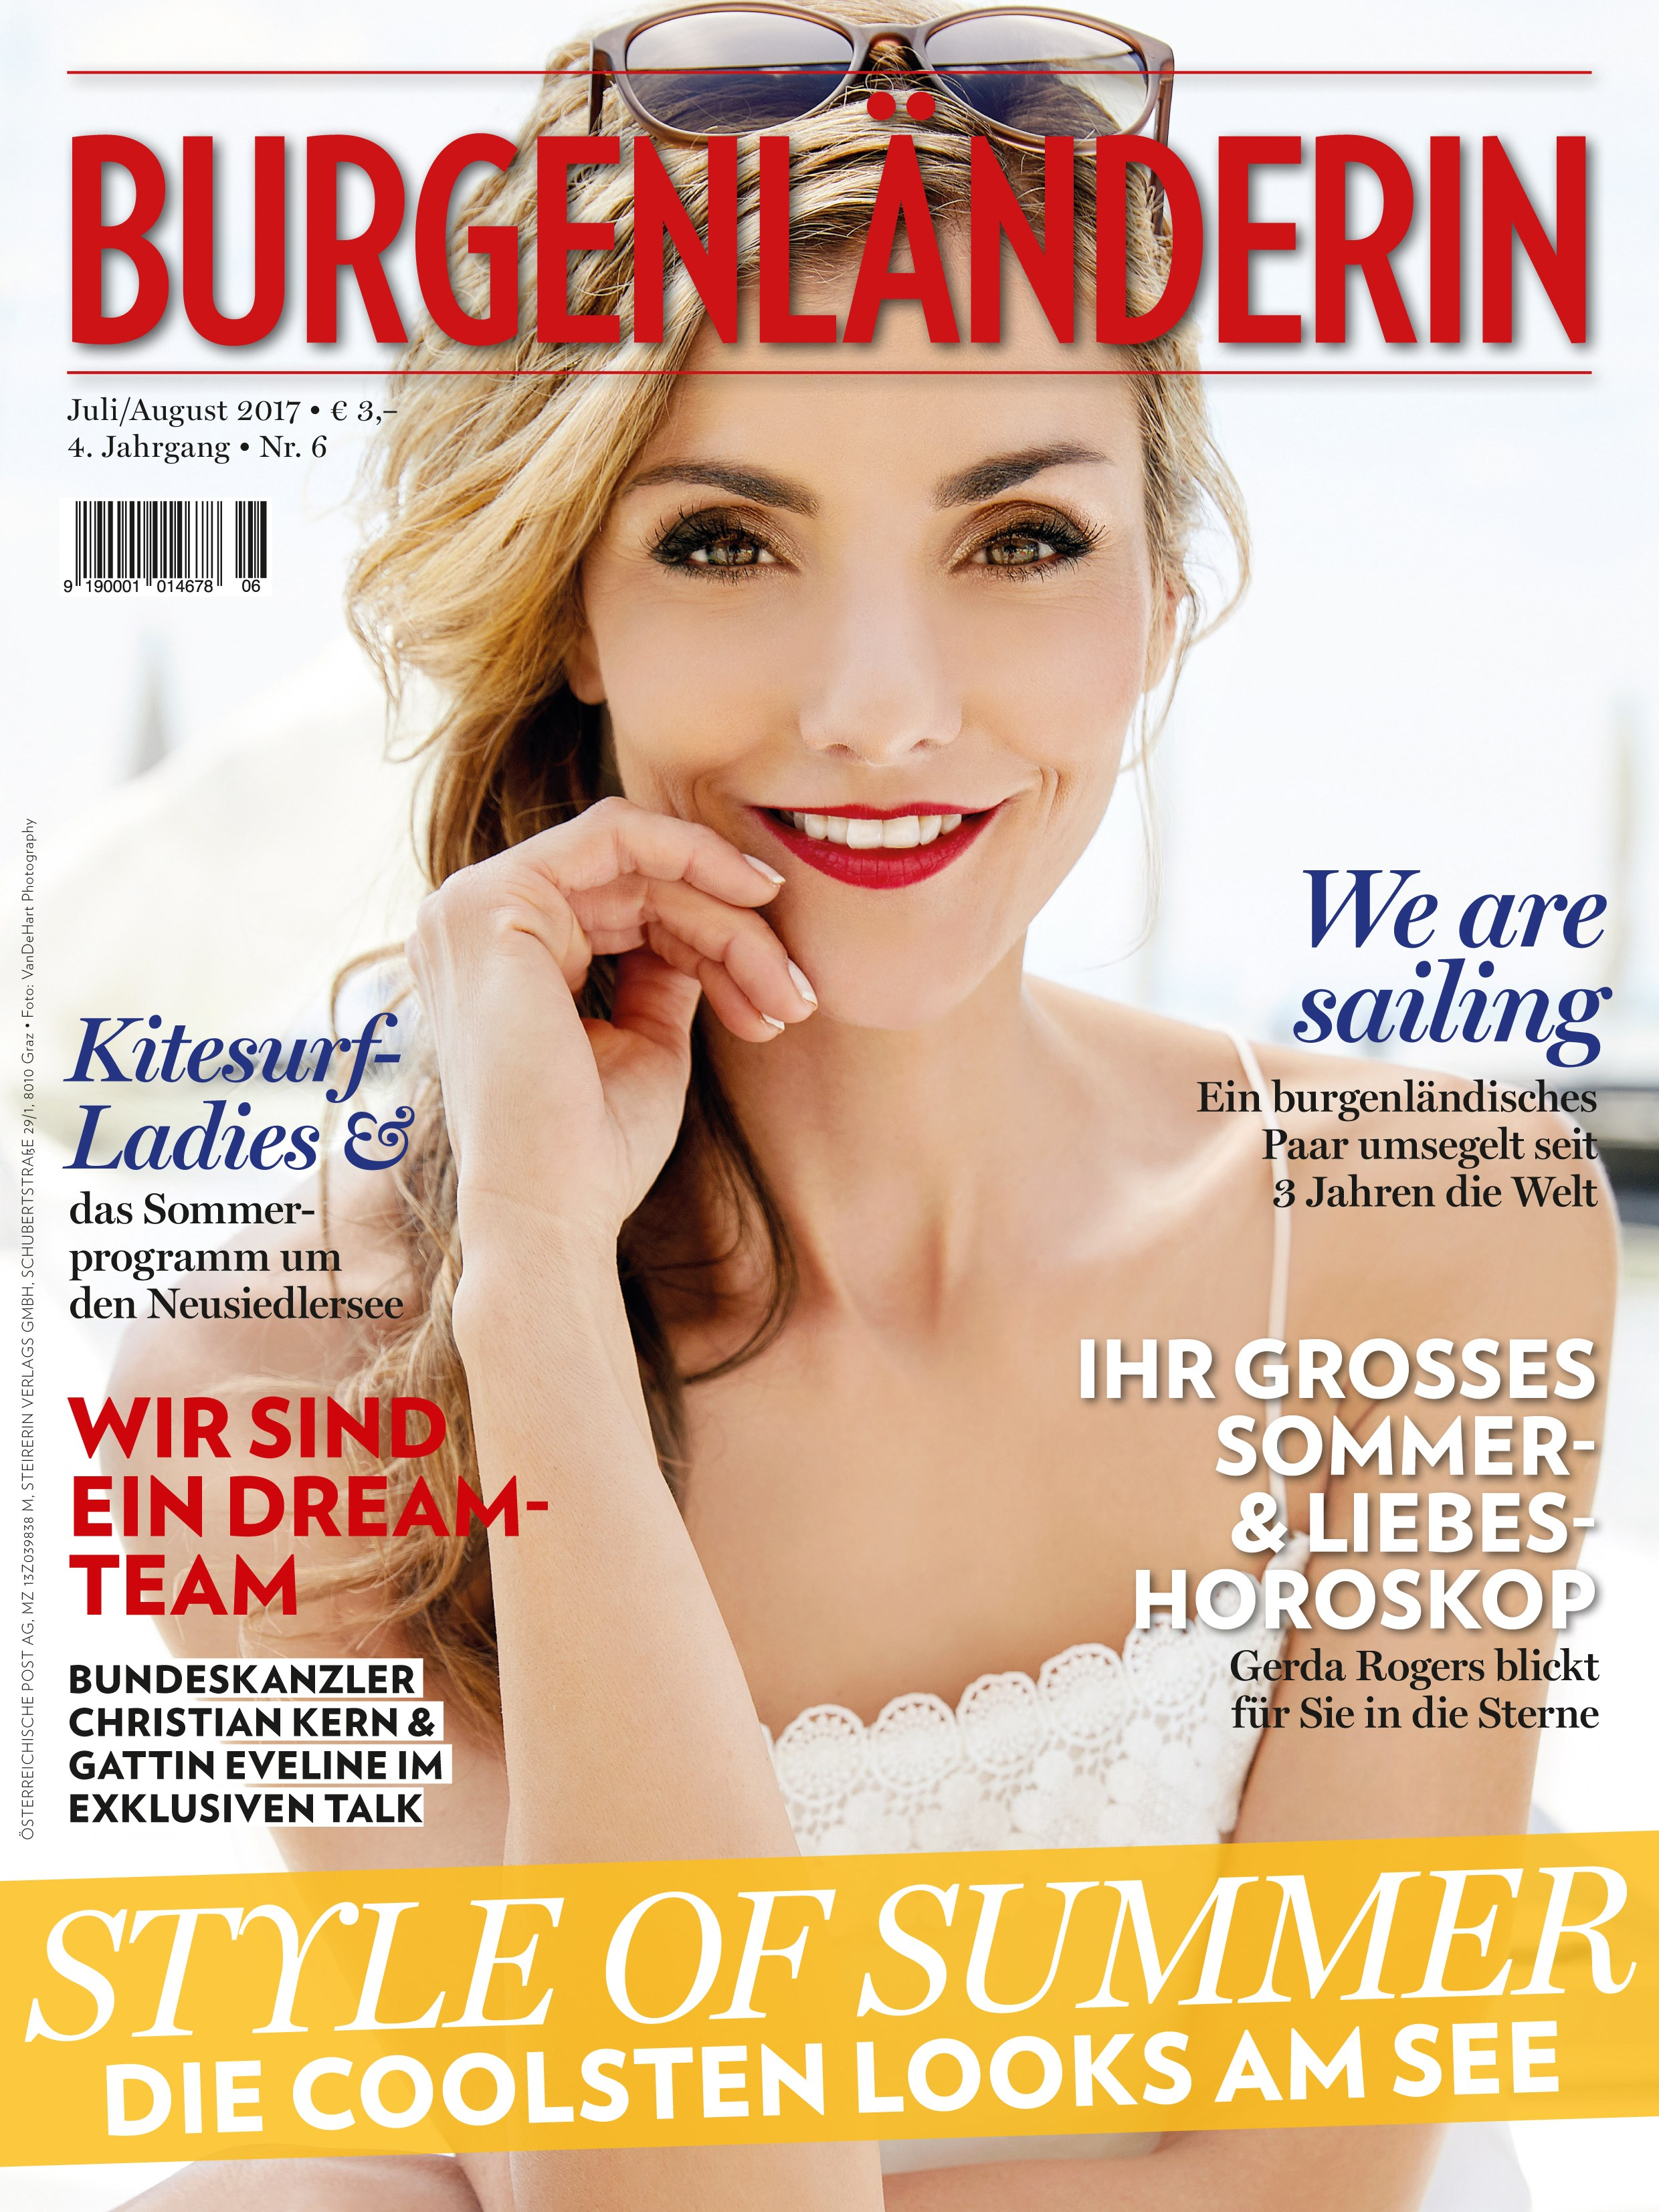 www.dieburgenlaenderin.at